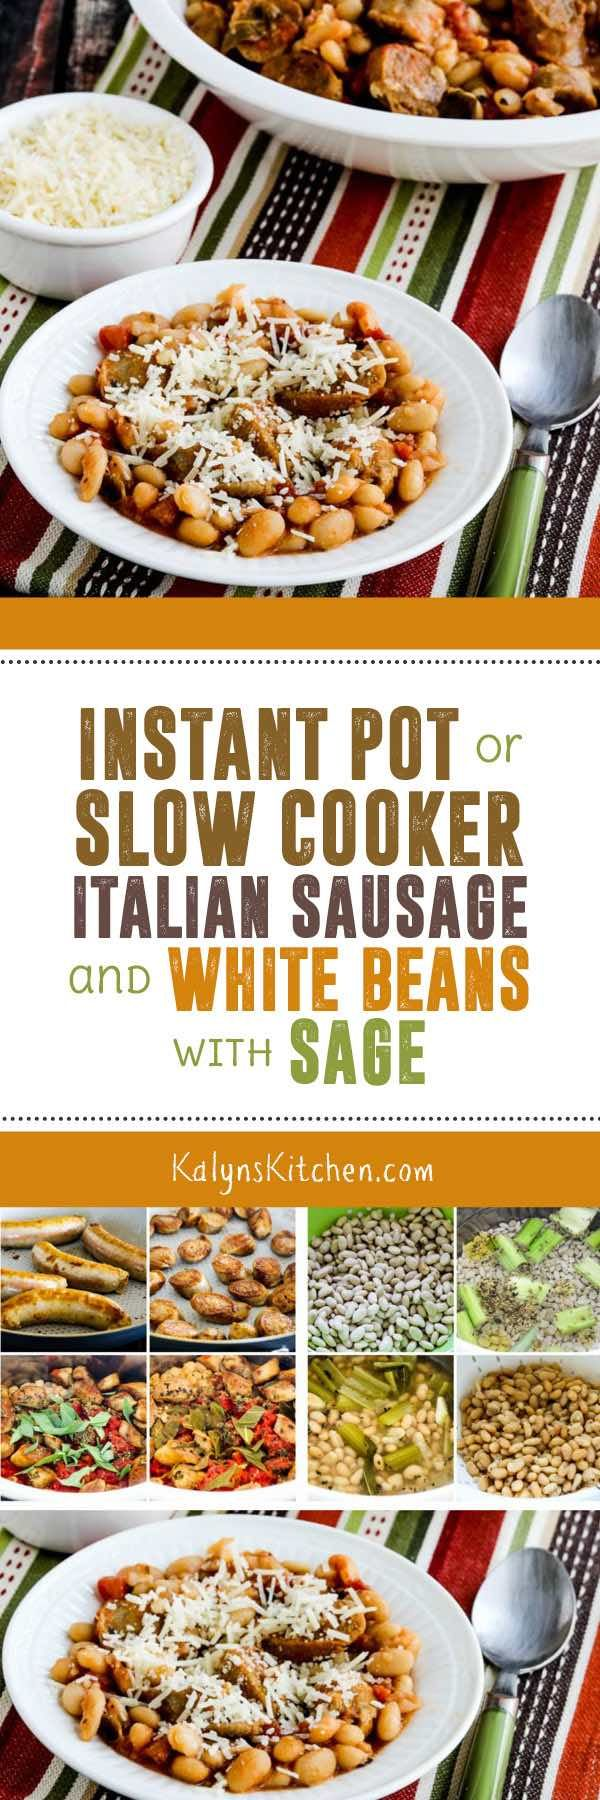 This delicious low-glycemic dish of Italian Sausage and White Beans with Sage can be made in the Instant Pot or Slow Cooker, or even on the stove if you prefer. This is an amazing recipe with authentic Italian flavors. If you'd like a more carb-conscious version, use half the amount of beans and twice the amount of sausage. [found on KalynsKitchen.com] #ItalianSausageWhiteBeans #InstantPotItalianSausageWhiteBeans #SlowCookerItalianSausageWhiteBeans